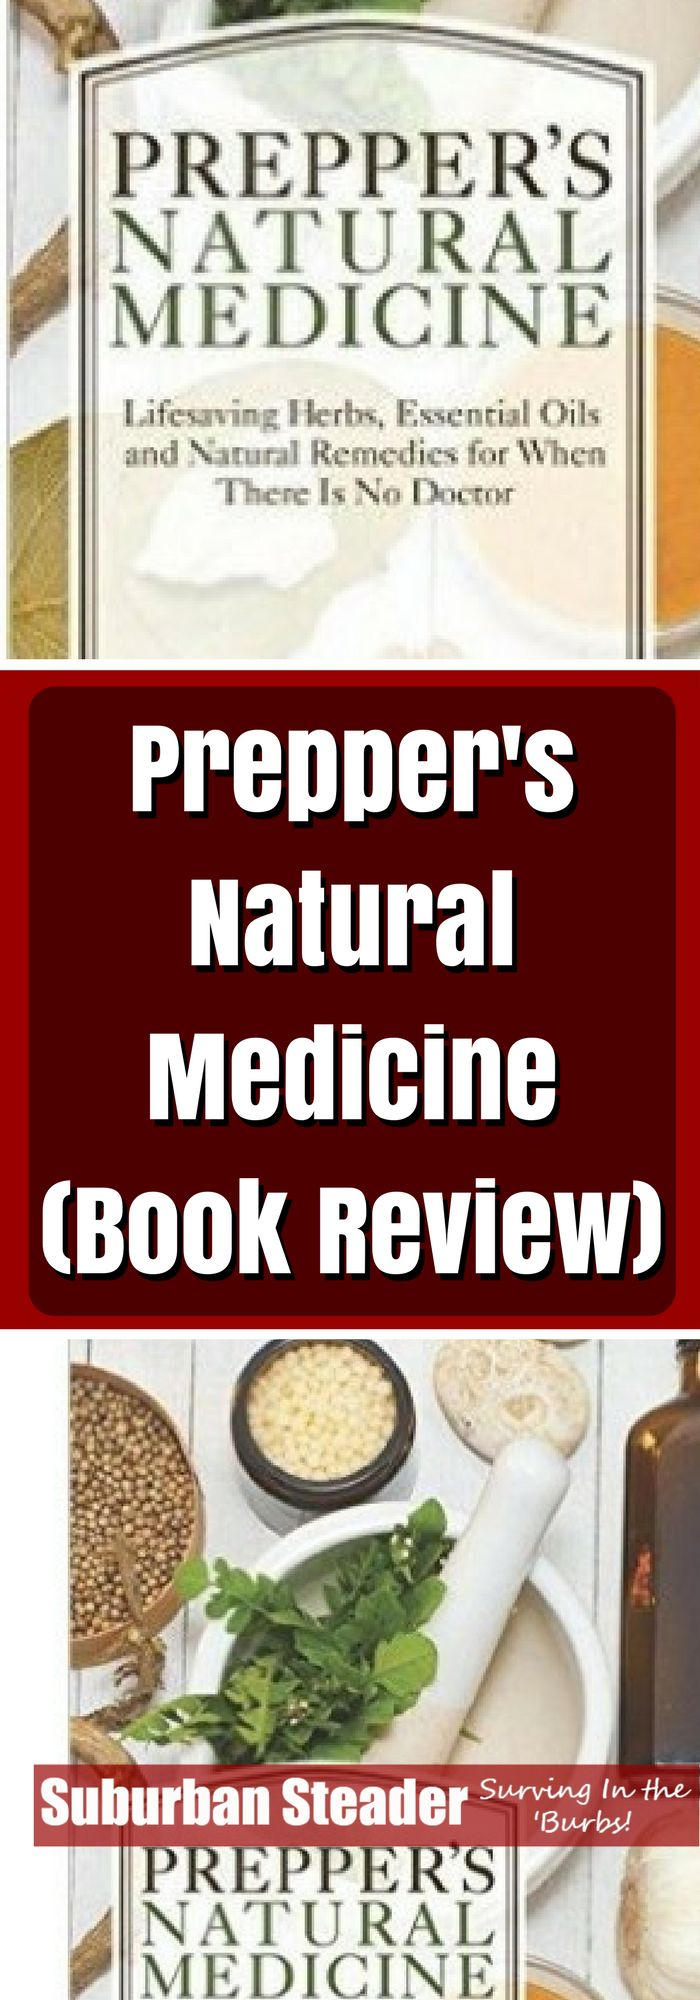 "Cat Eliis has written a book titled ""Prepper's Natural Medicine."" Come find out if we think you should add it to your prepping library..."